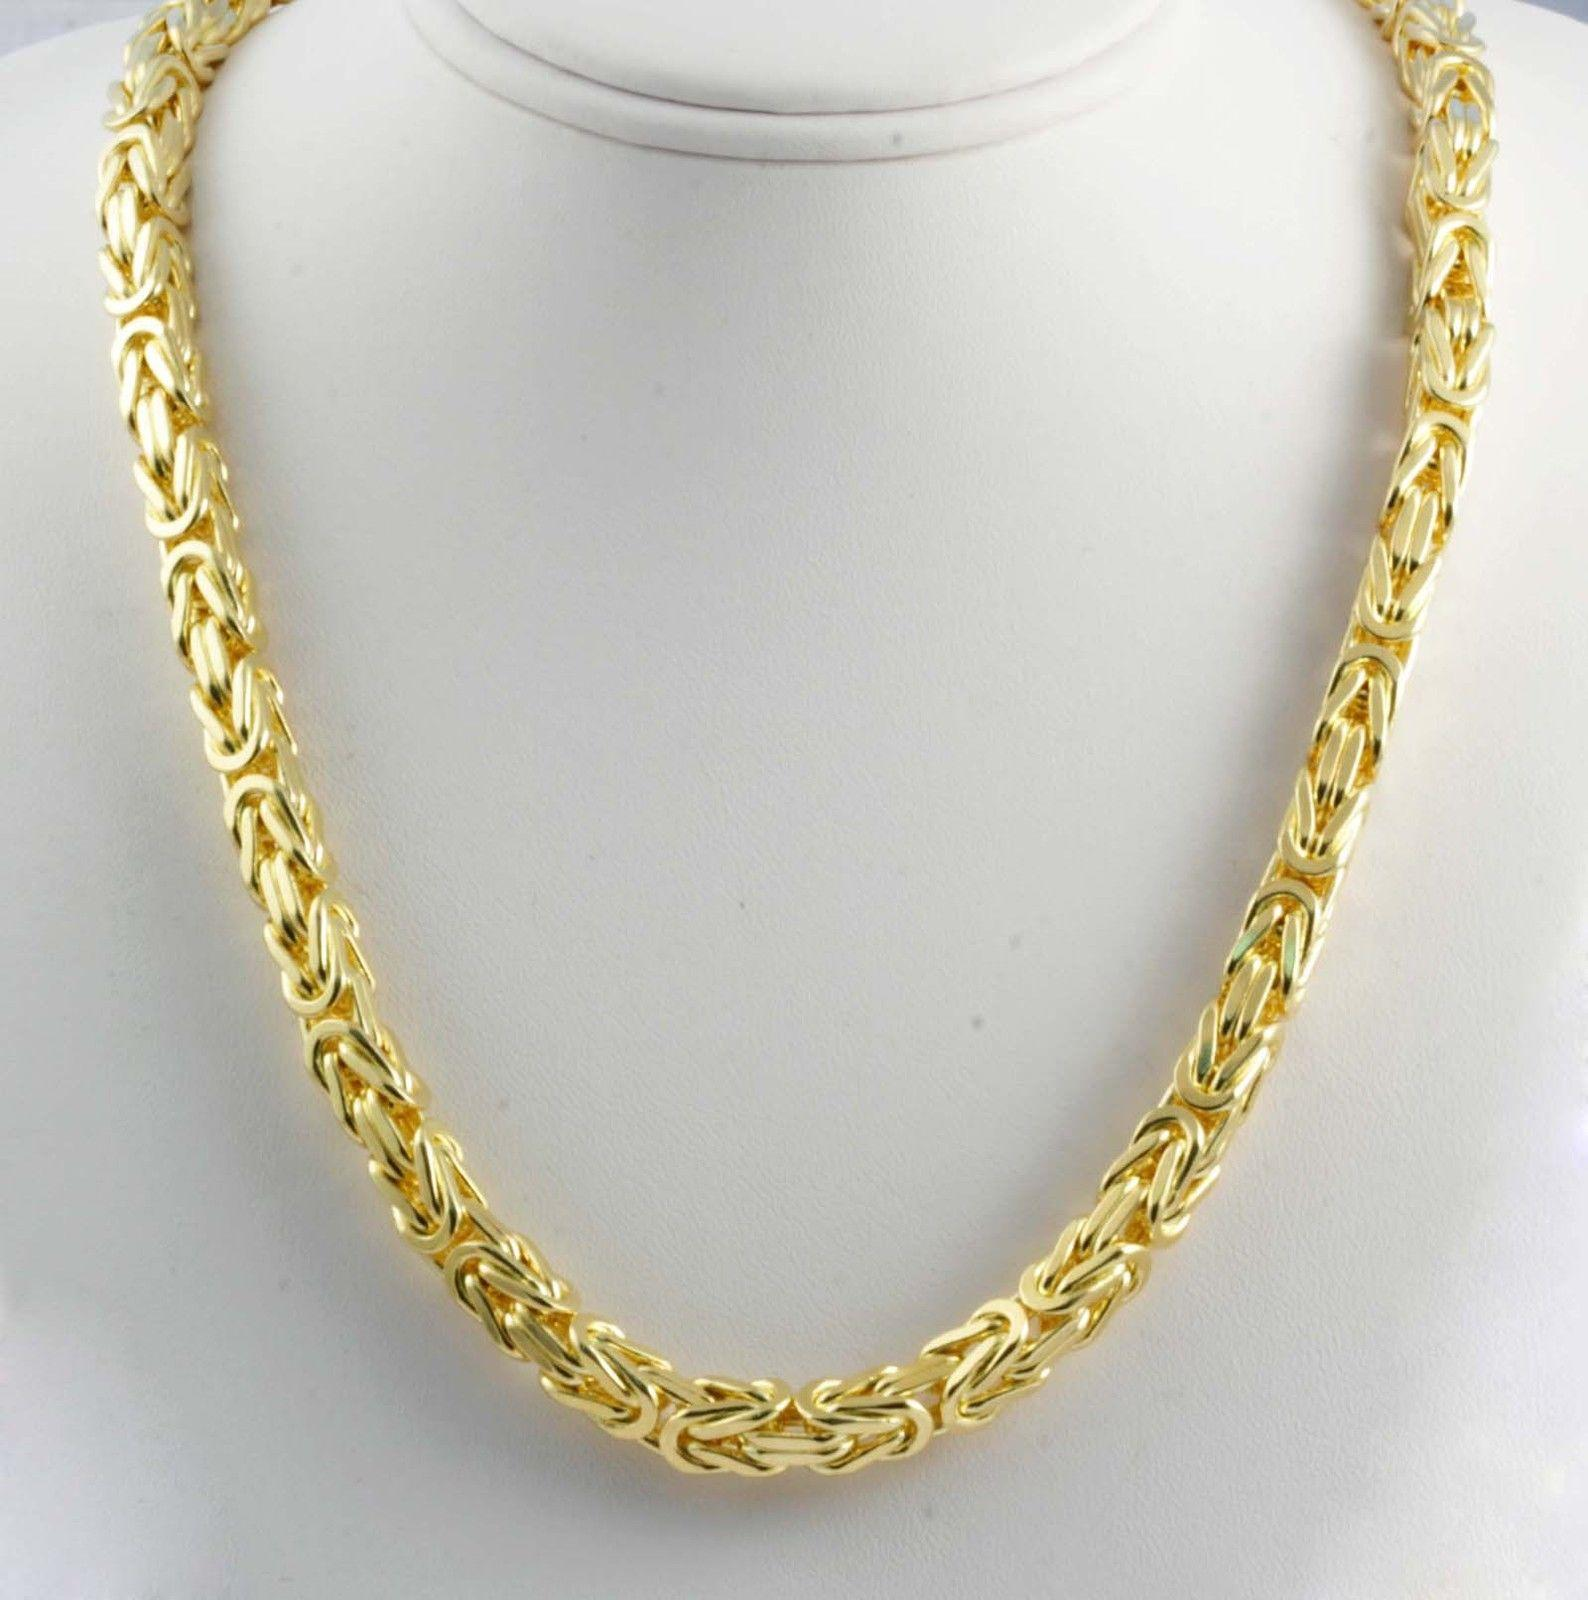 cuban chains necklace mens cut chain gold l yellow link diamond hollow